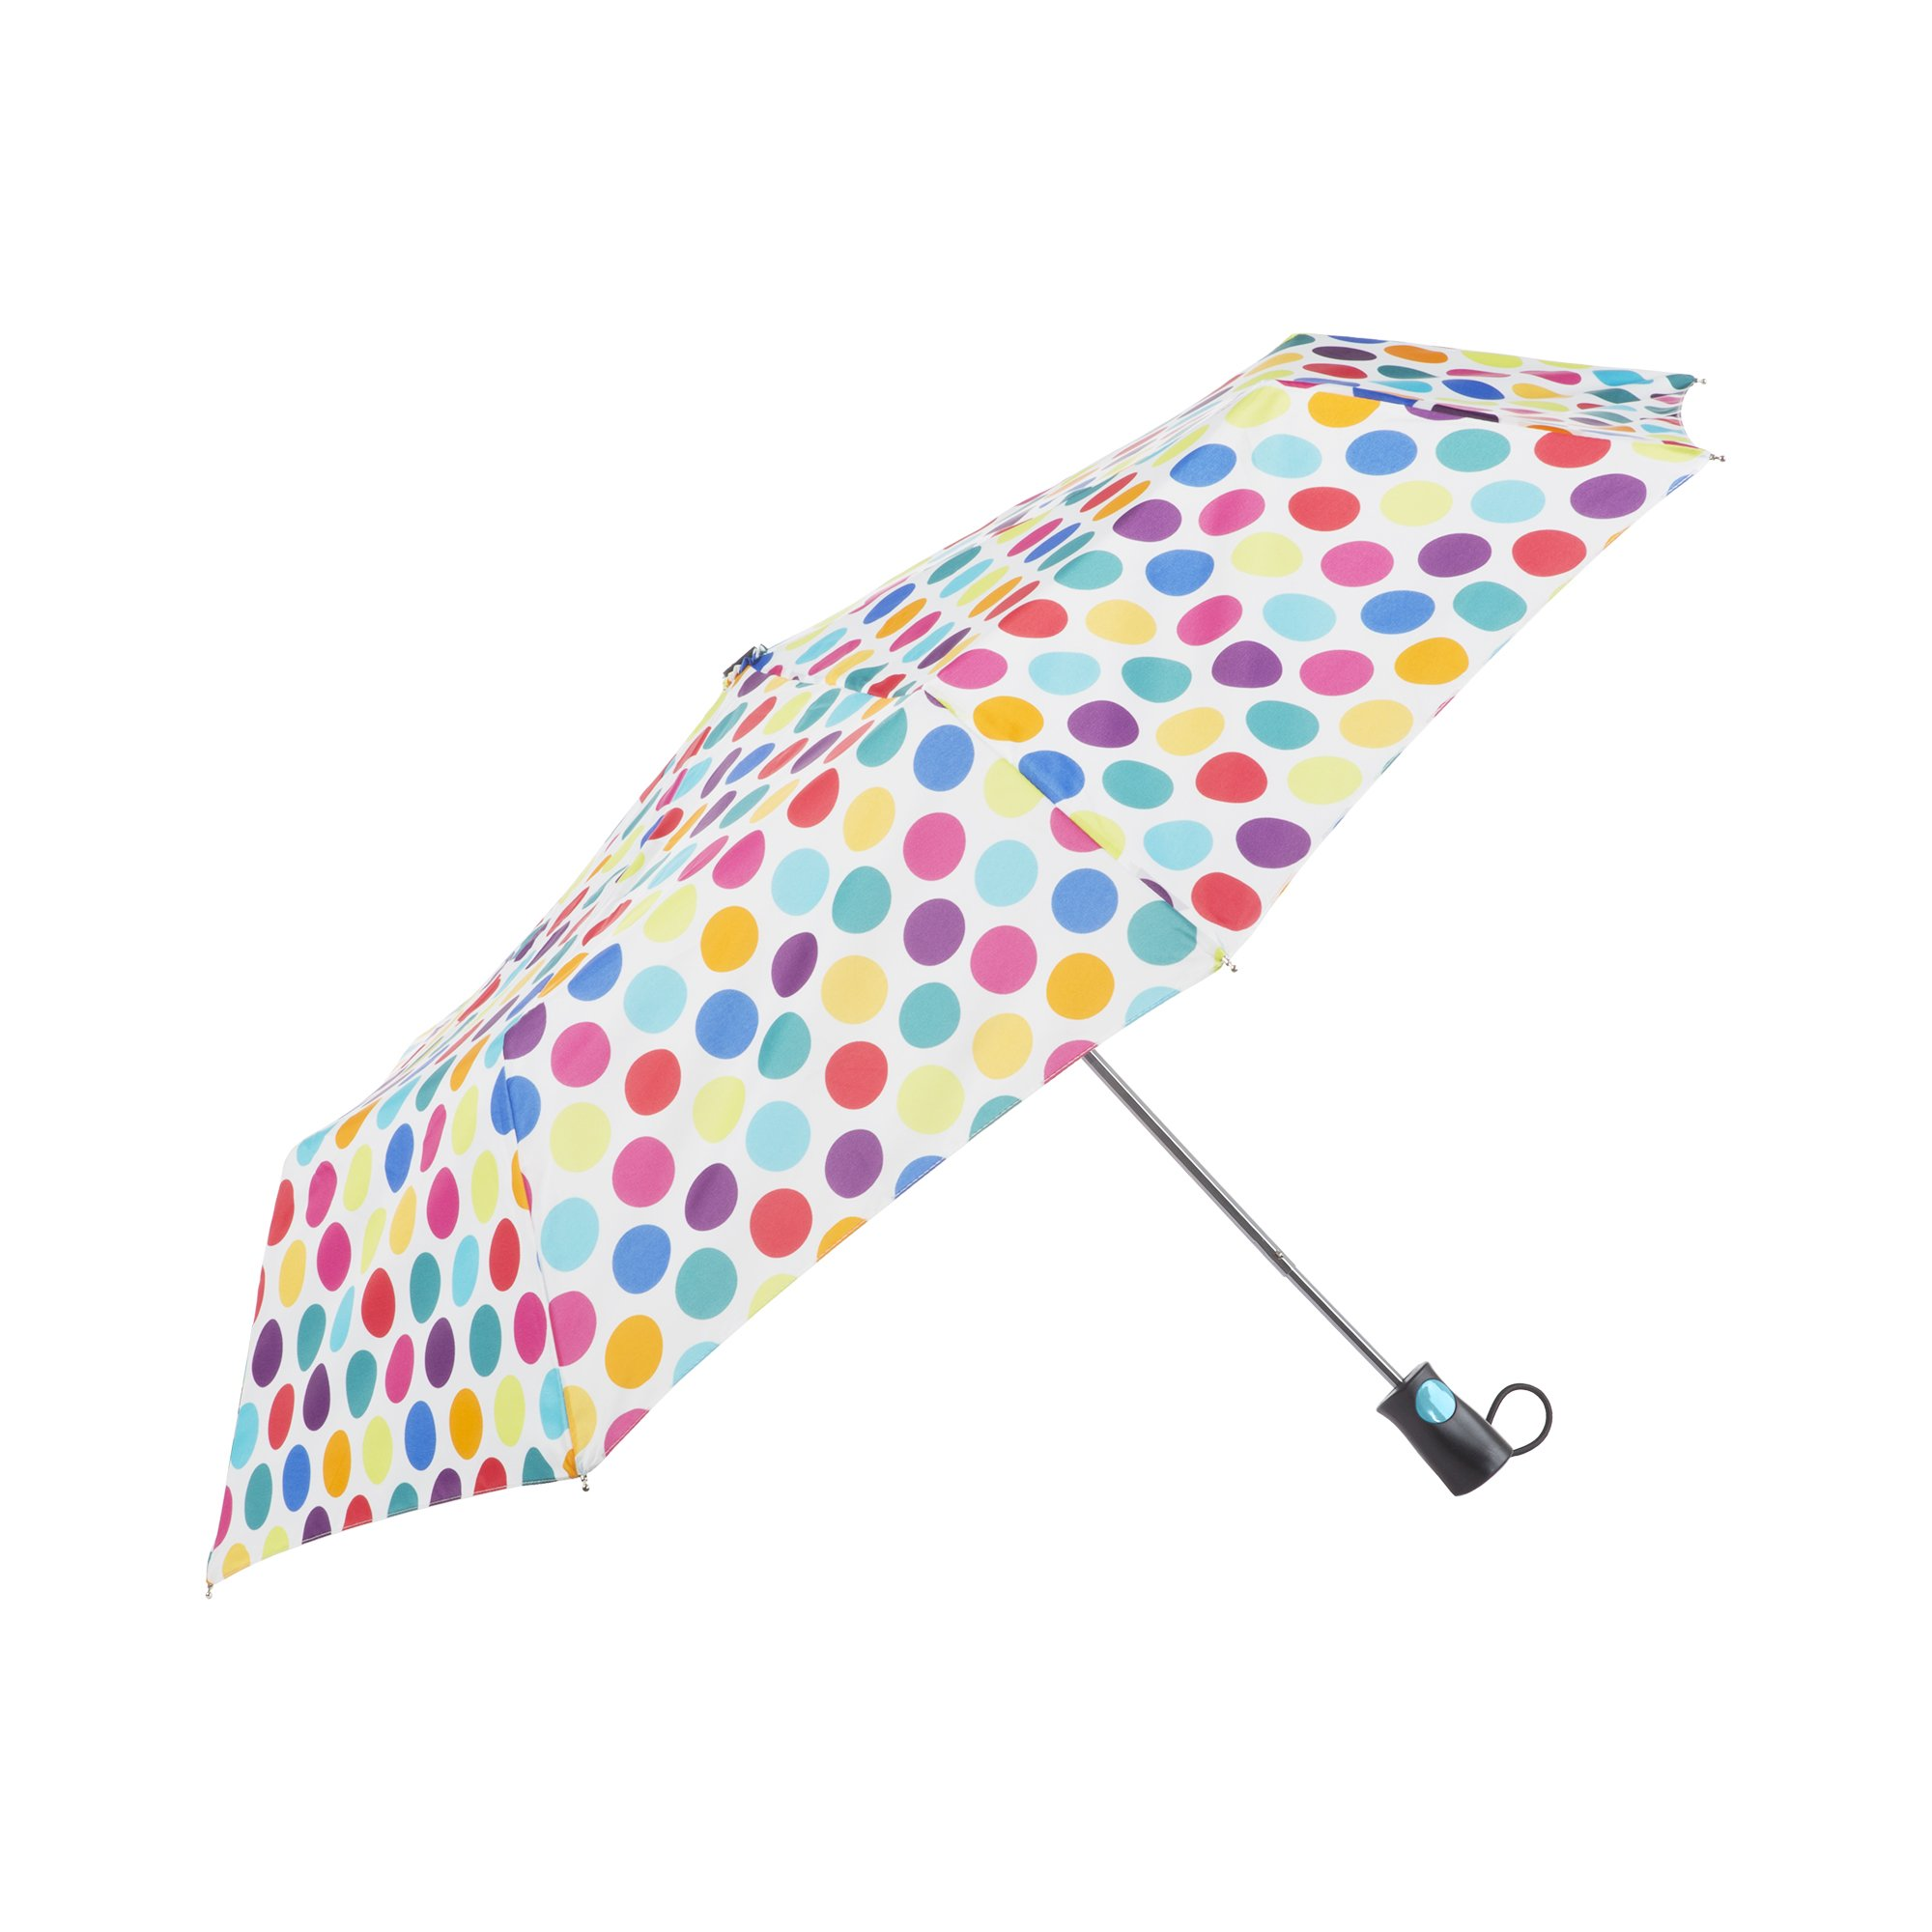 totes Women's Sunguard One-Touch Auto Open Umbrella with Neverwet, Judy Garland by totes (Image #2)